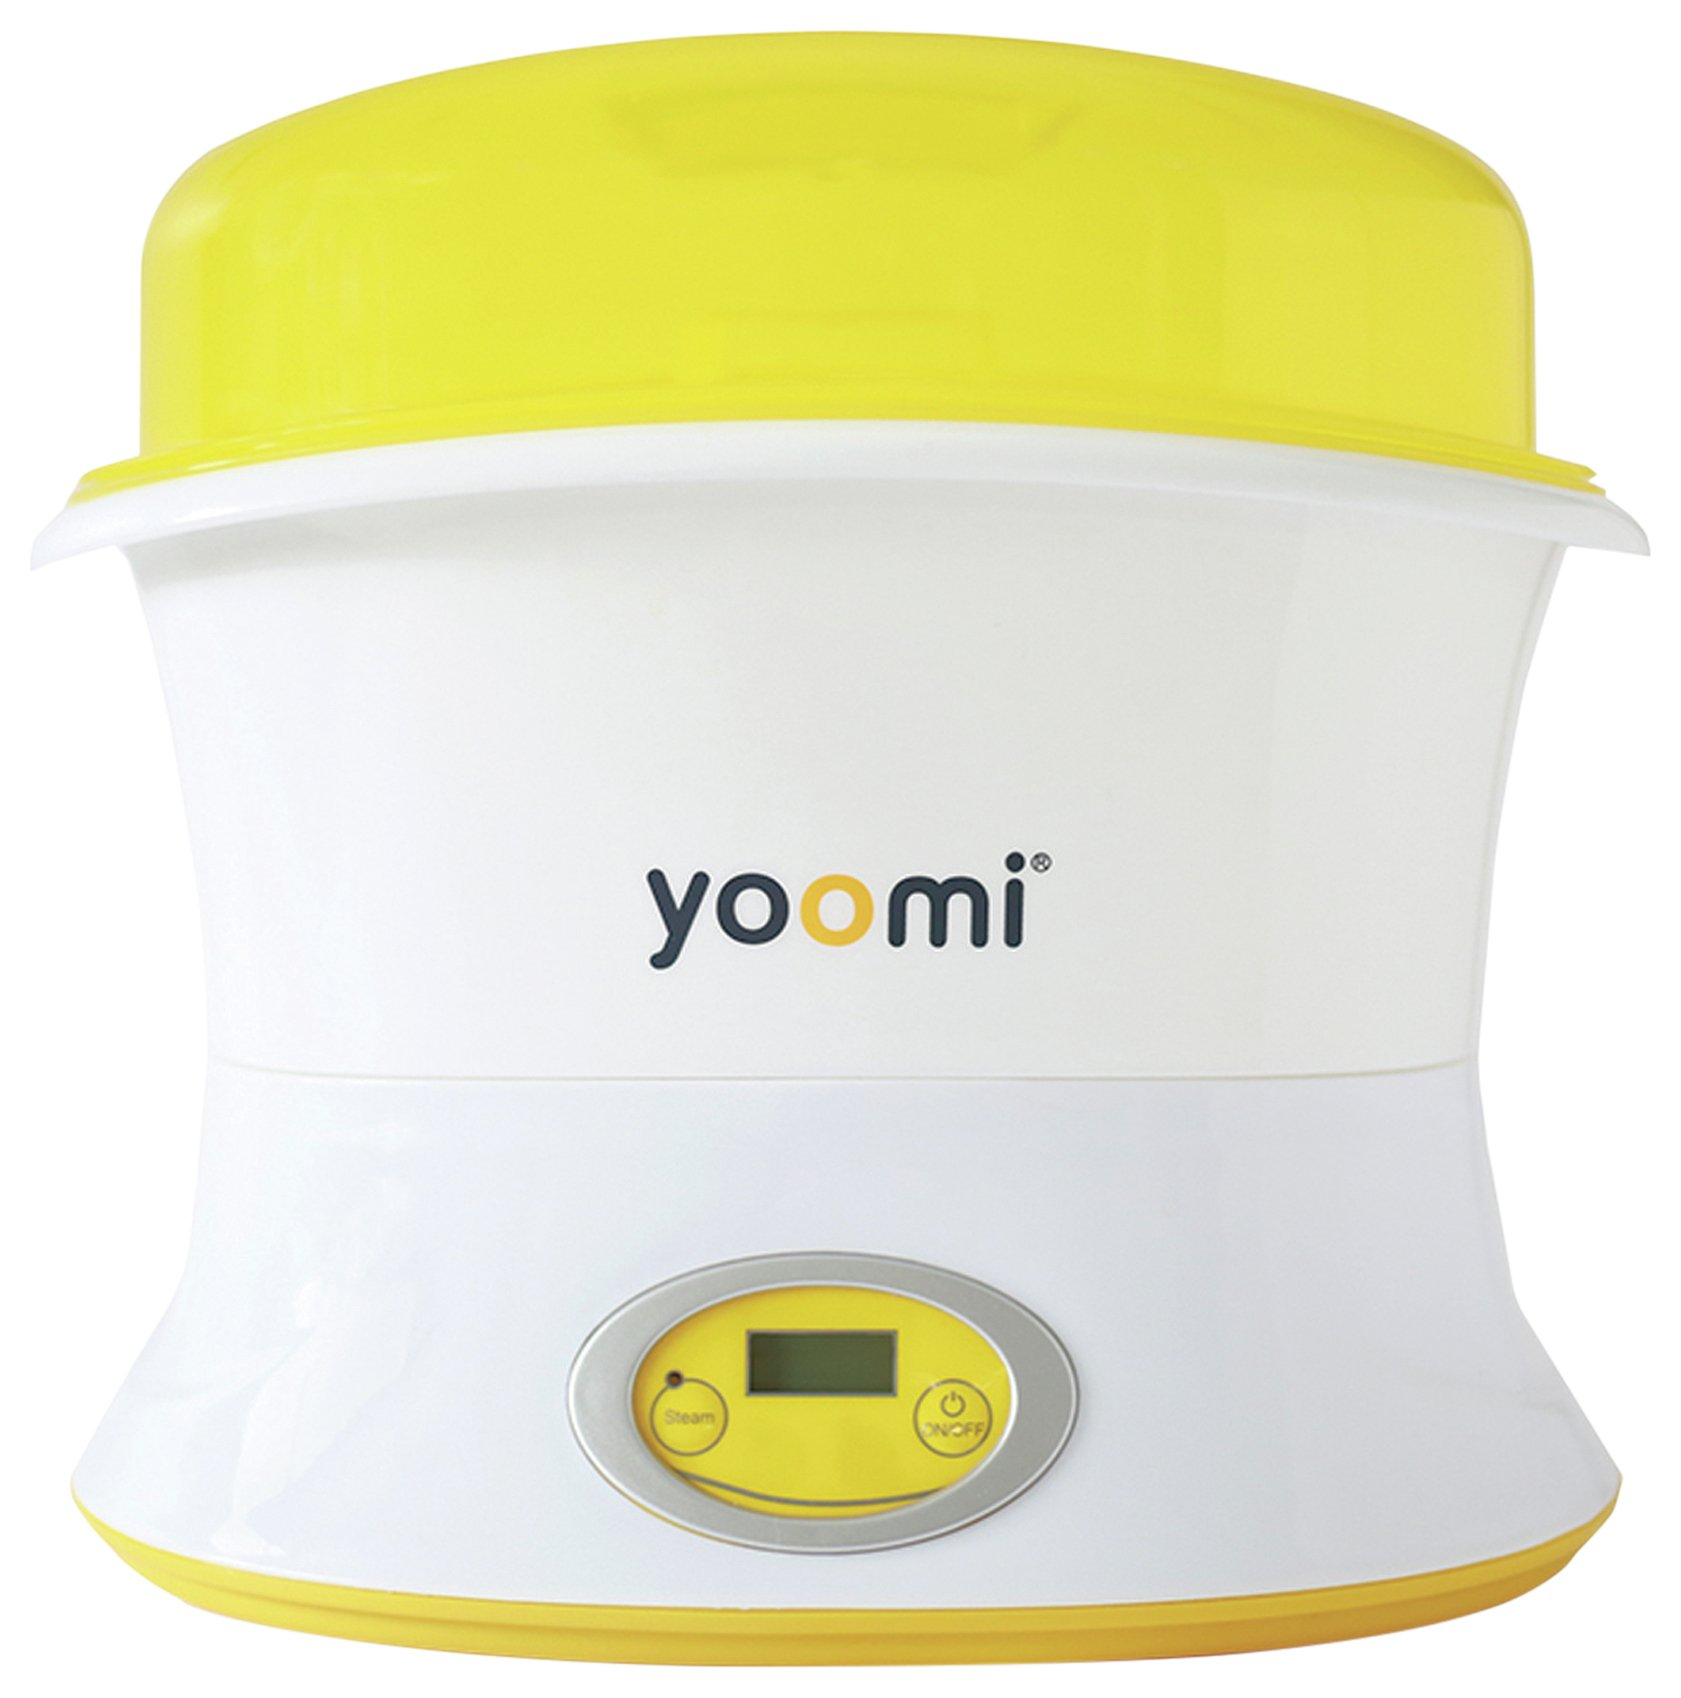 Sale On Yoomi Super Steriliser Yoomi Now Available Our Best Price On Yoomi Super Steriliser